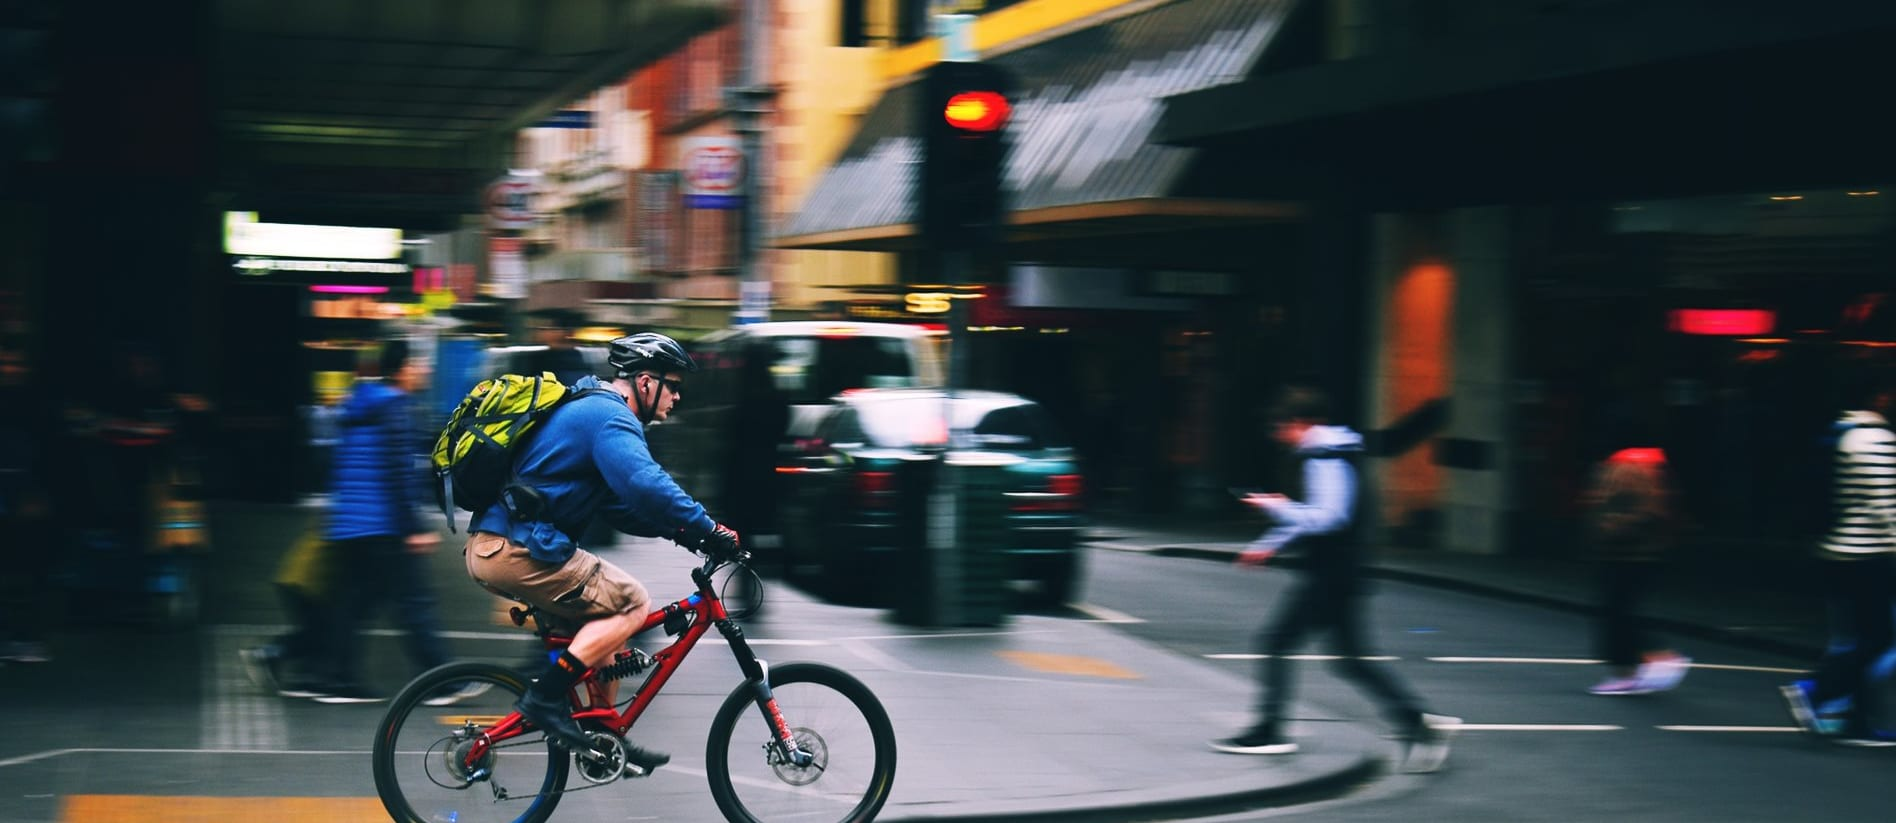 Cyclist in Melbourne